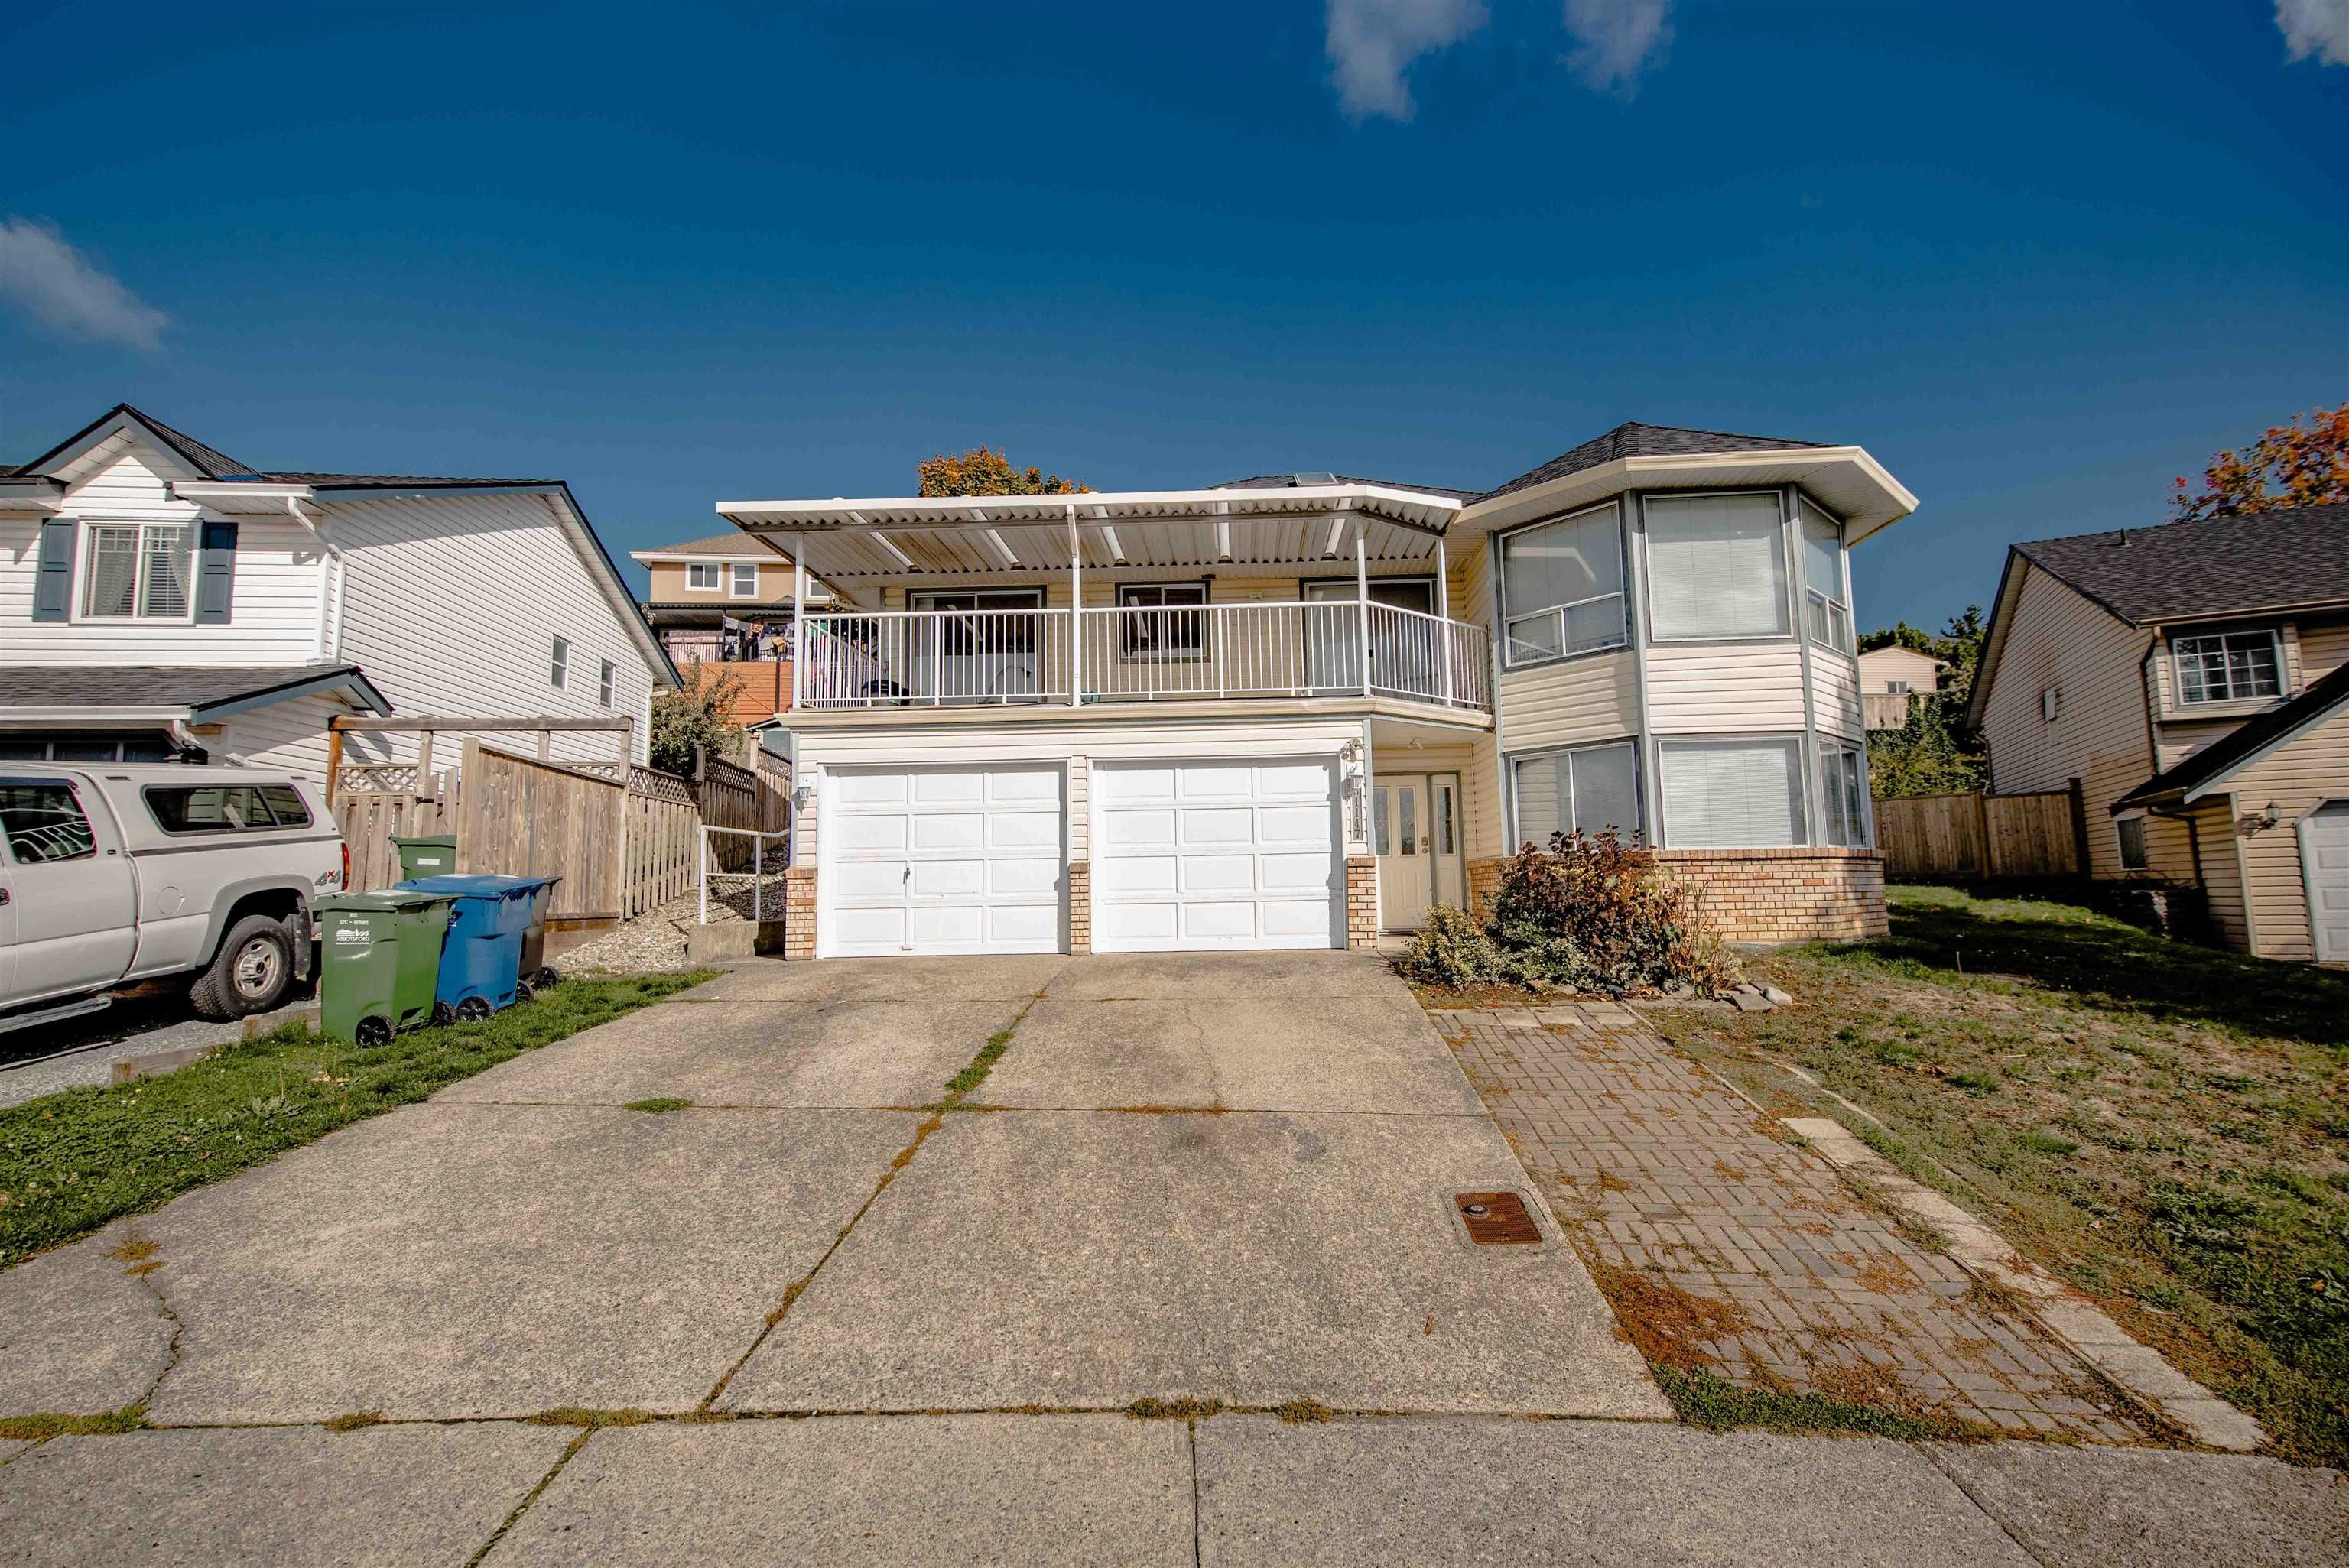 Main Photo: 31147 SIDONI Avenue in Abbotsford: Abbotsford West House for sale : MLS®# R2625273